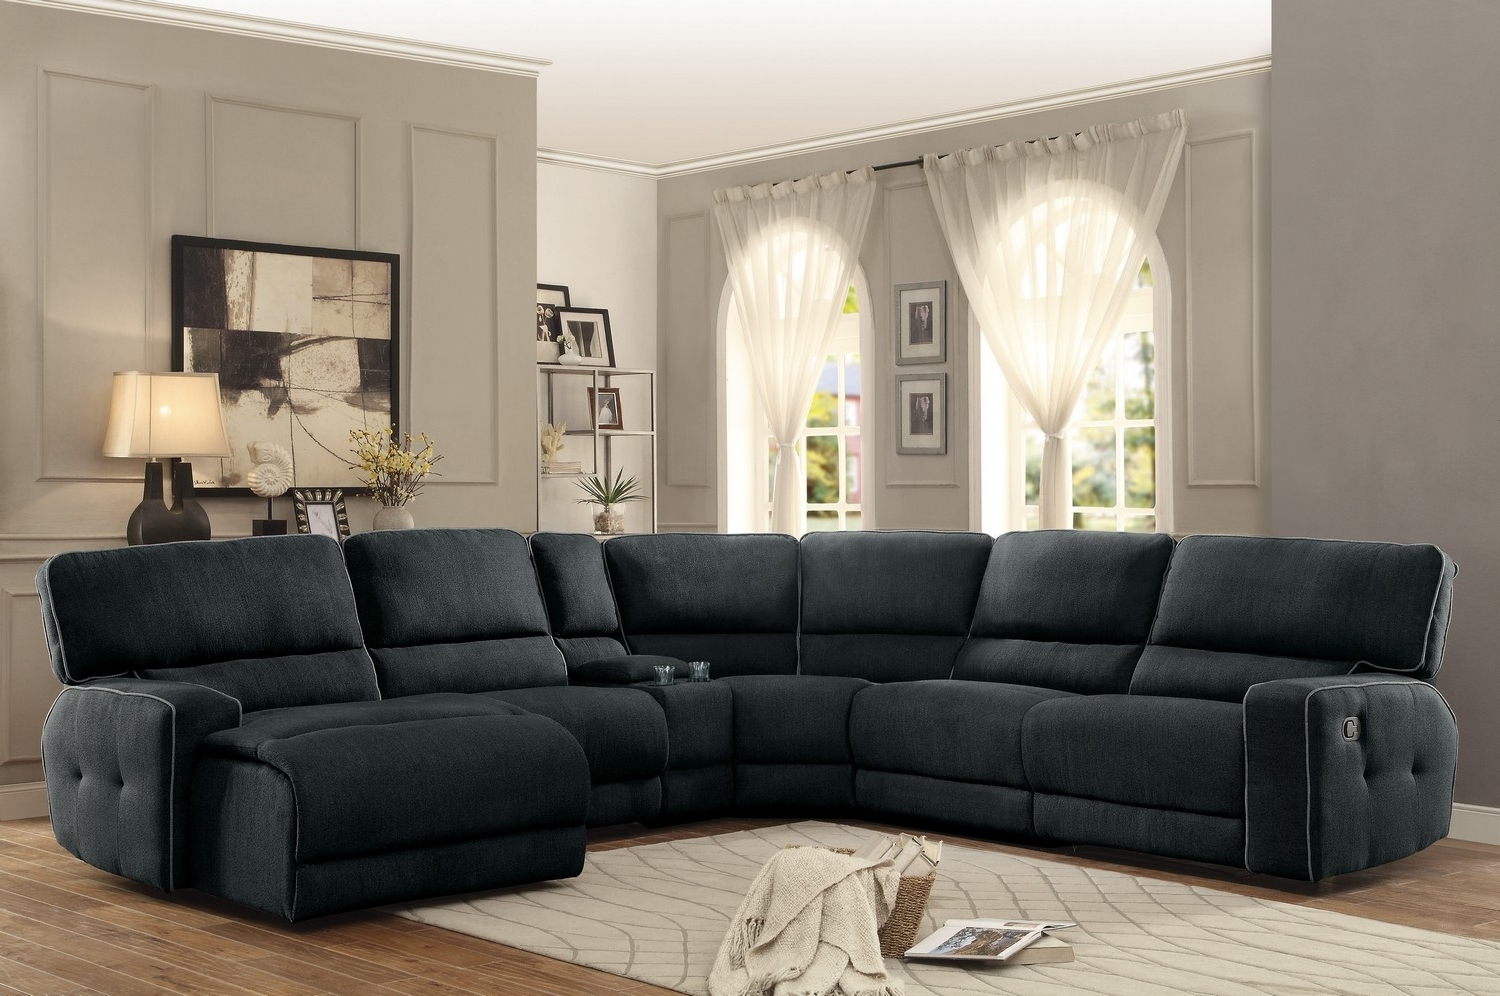 Trendy Cheap Sectional Sofas Under 400 Ethan Allen Sectional Sofas Fabric Intended For Jedd Fabric Reclining Sectional Sofas (View 15 of 15)